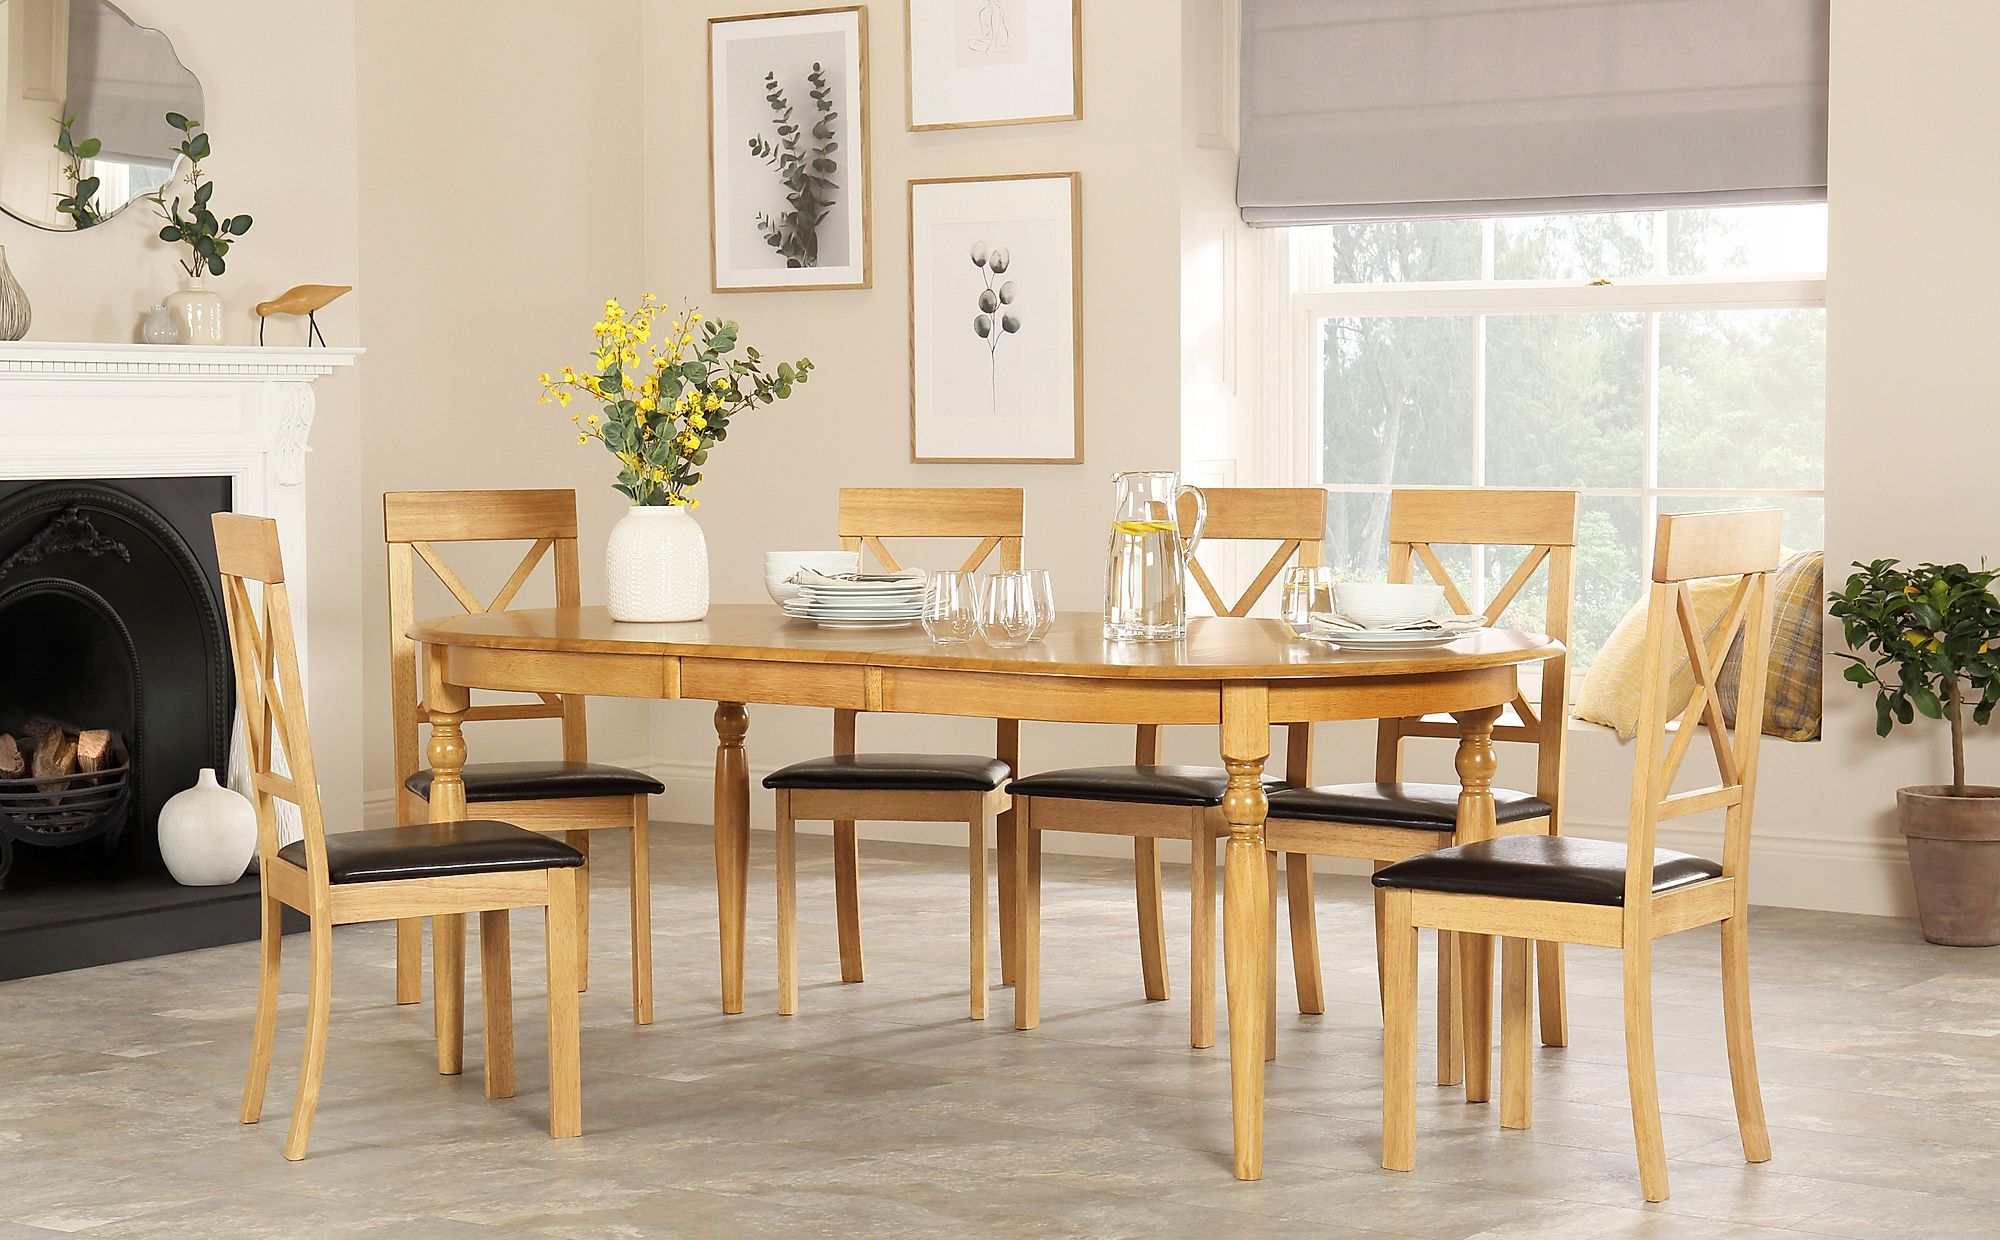 Details About Albany Oval Oak Extending Dining Table With 4 6 8 Kendal Chairs Brown Pad